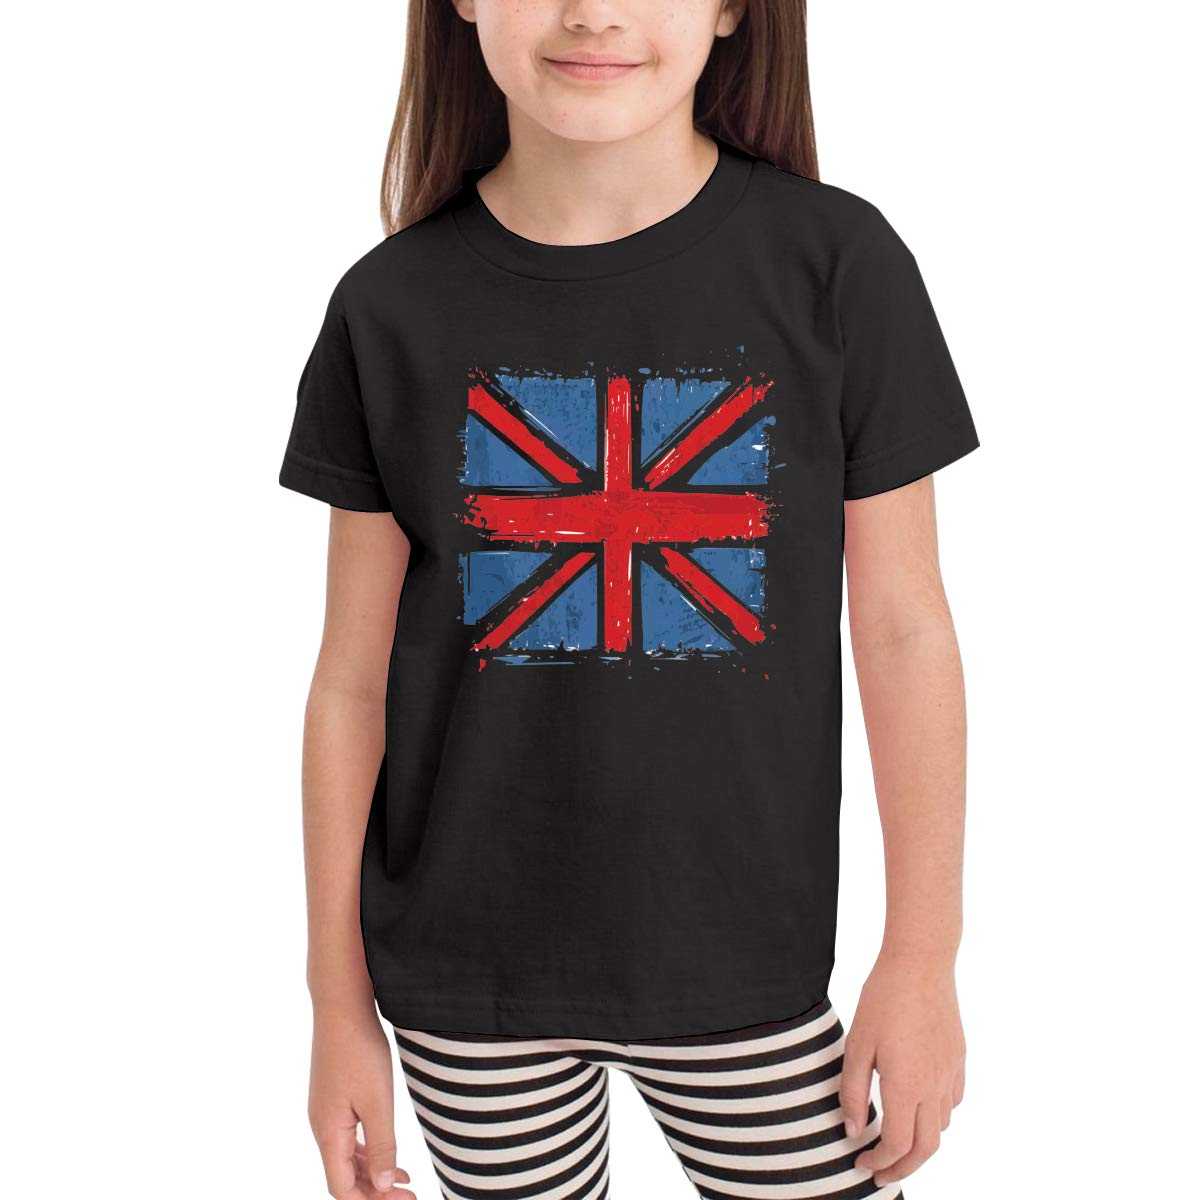 Onlybabycare The Union Flag 100/% Cotton Toddler Baby Boys Girls Kids Short Sleeve T Shirt Top Tee Clothes 2-6 T